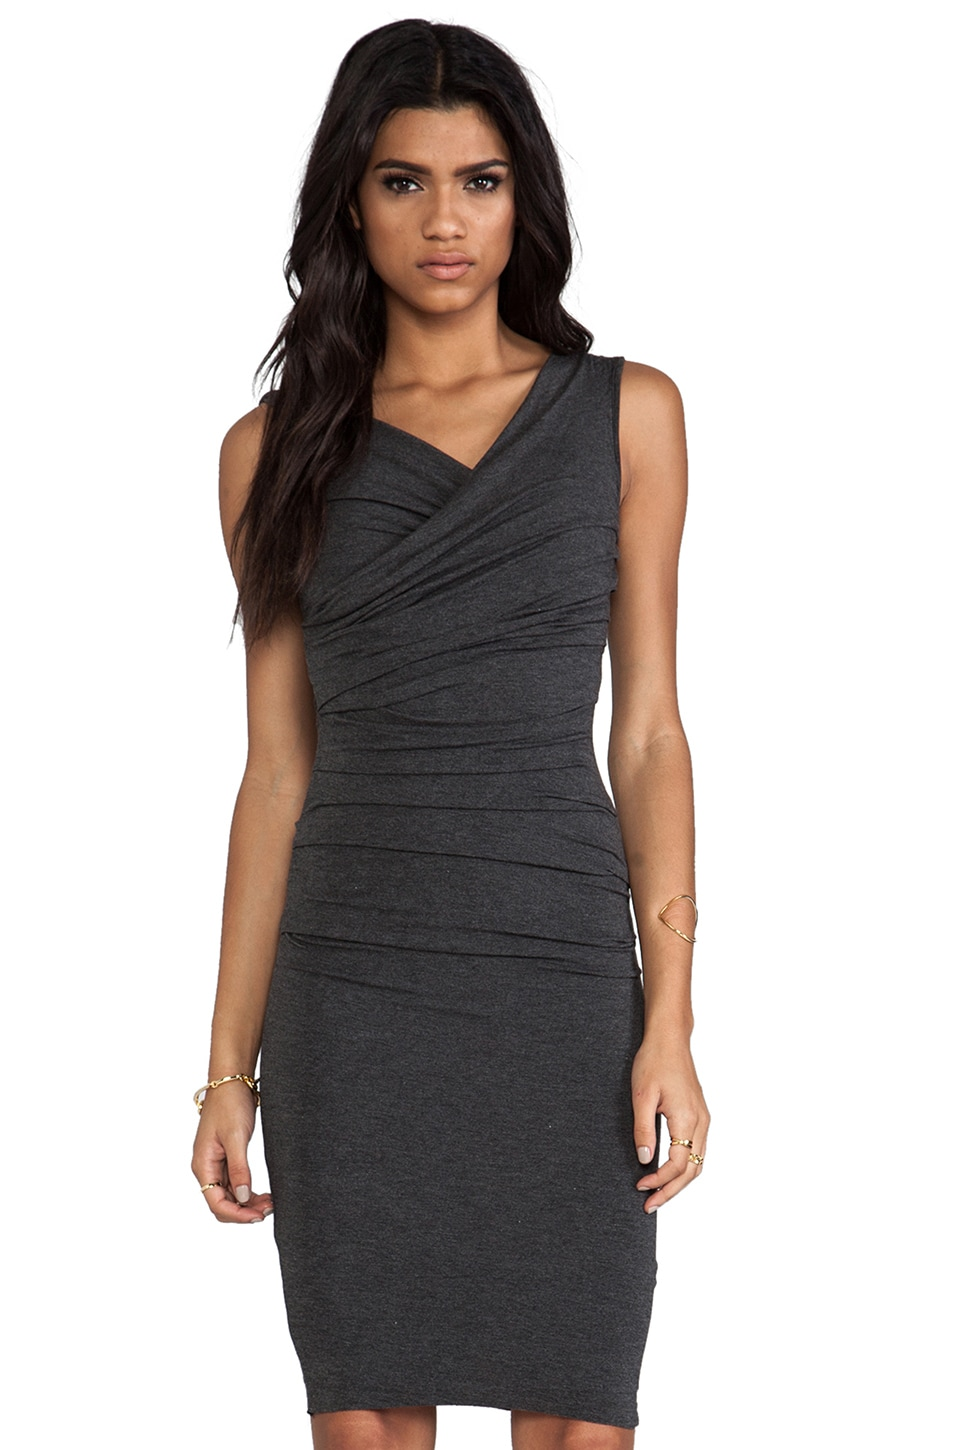 Bailey 44 Marilyn Dress in Charcoal